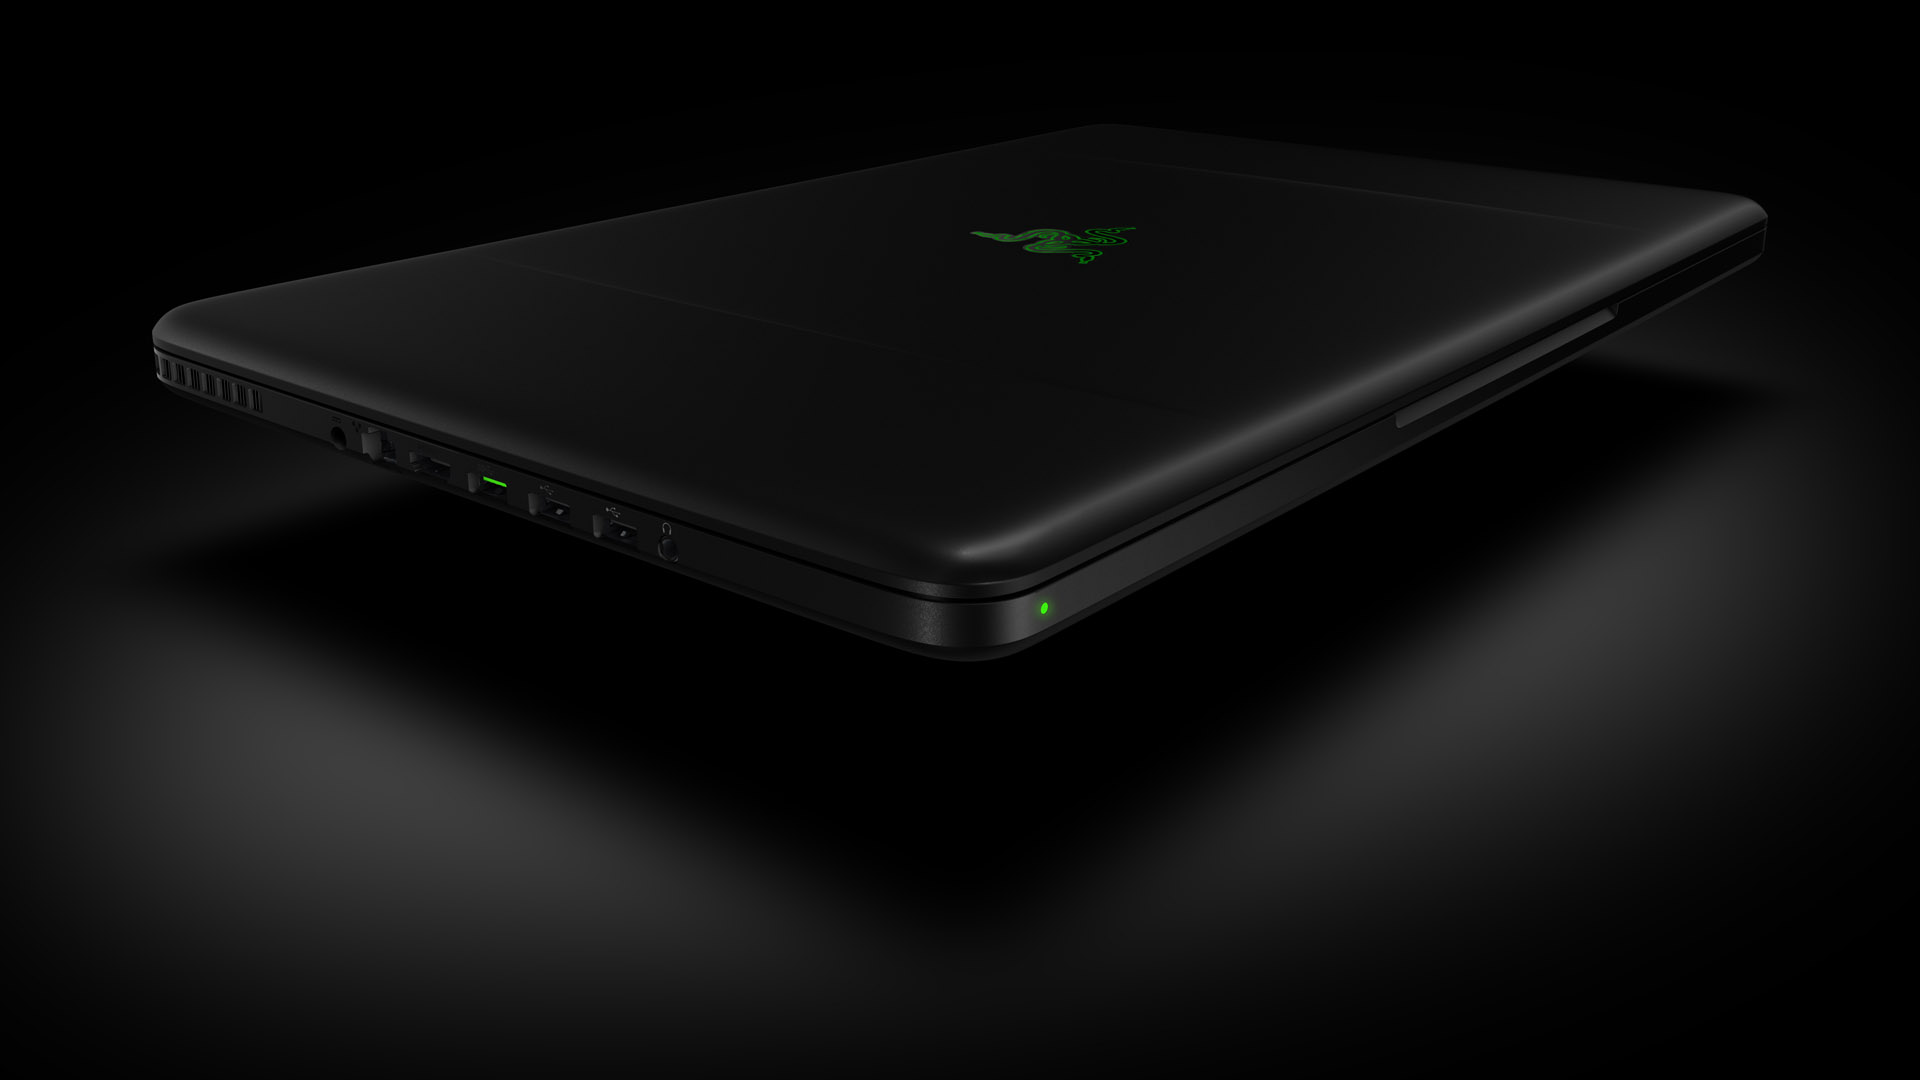 razer_blade_gaming_laptop_02